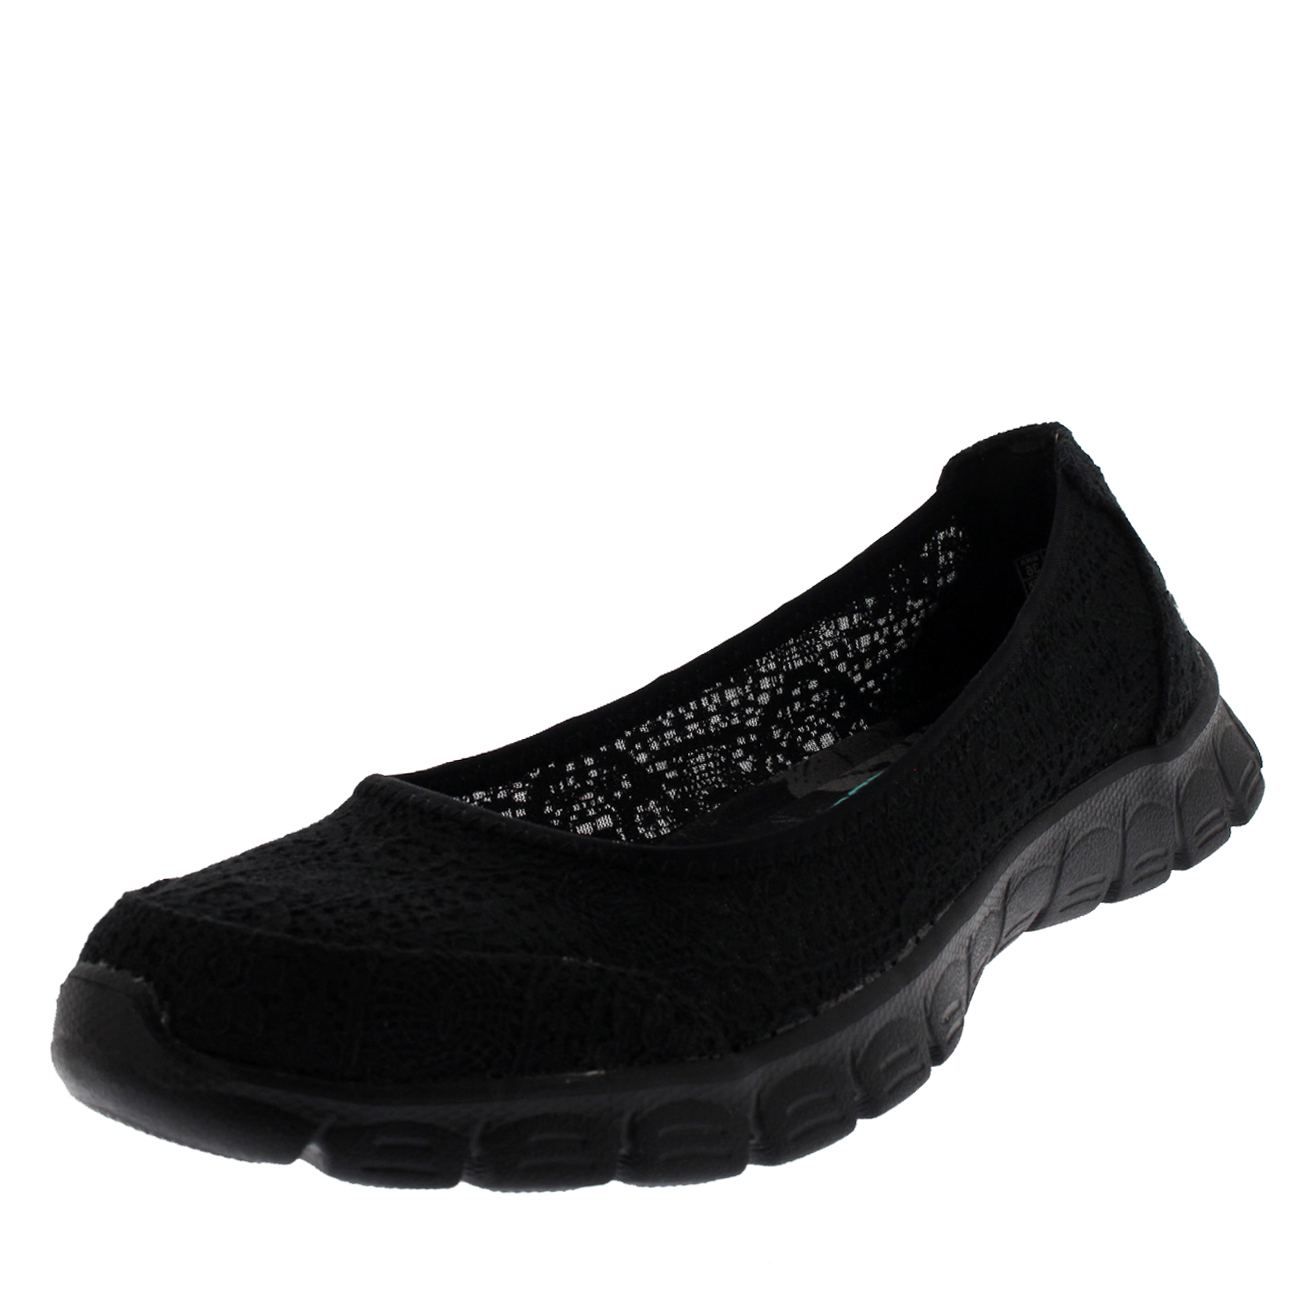 Skechers Beautify Ez Flex 3.0